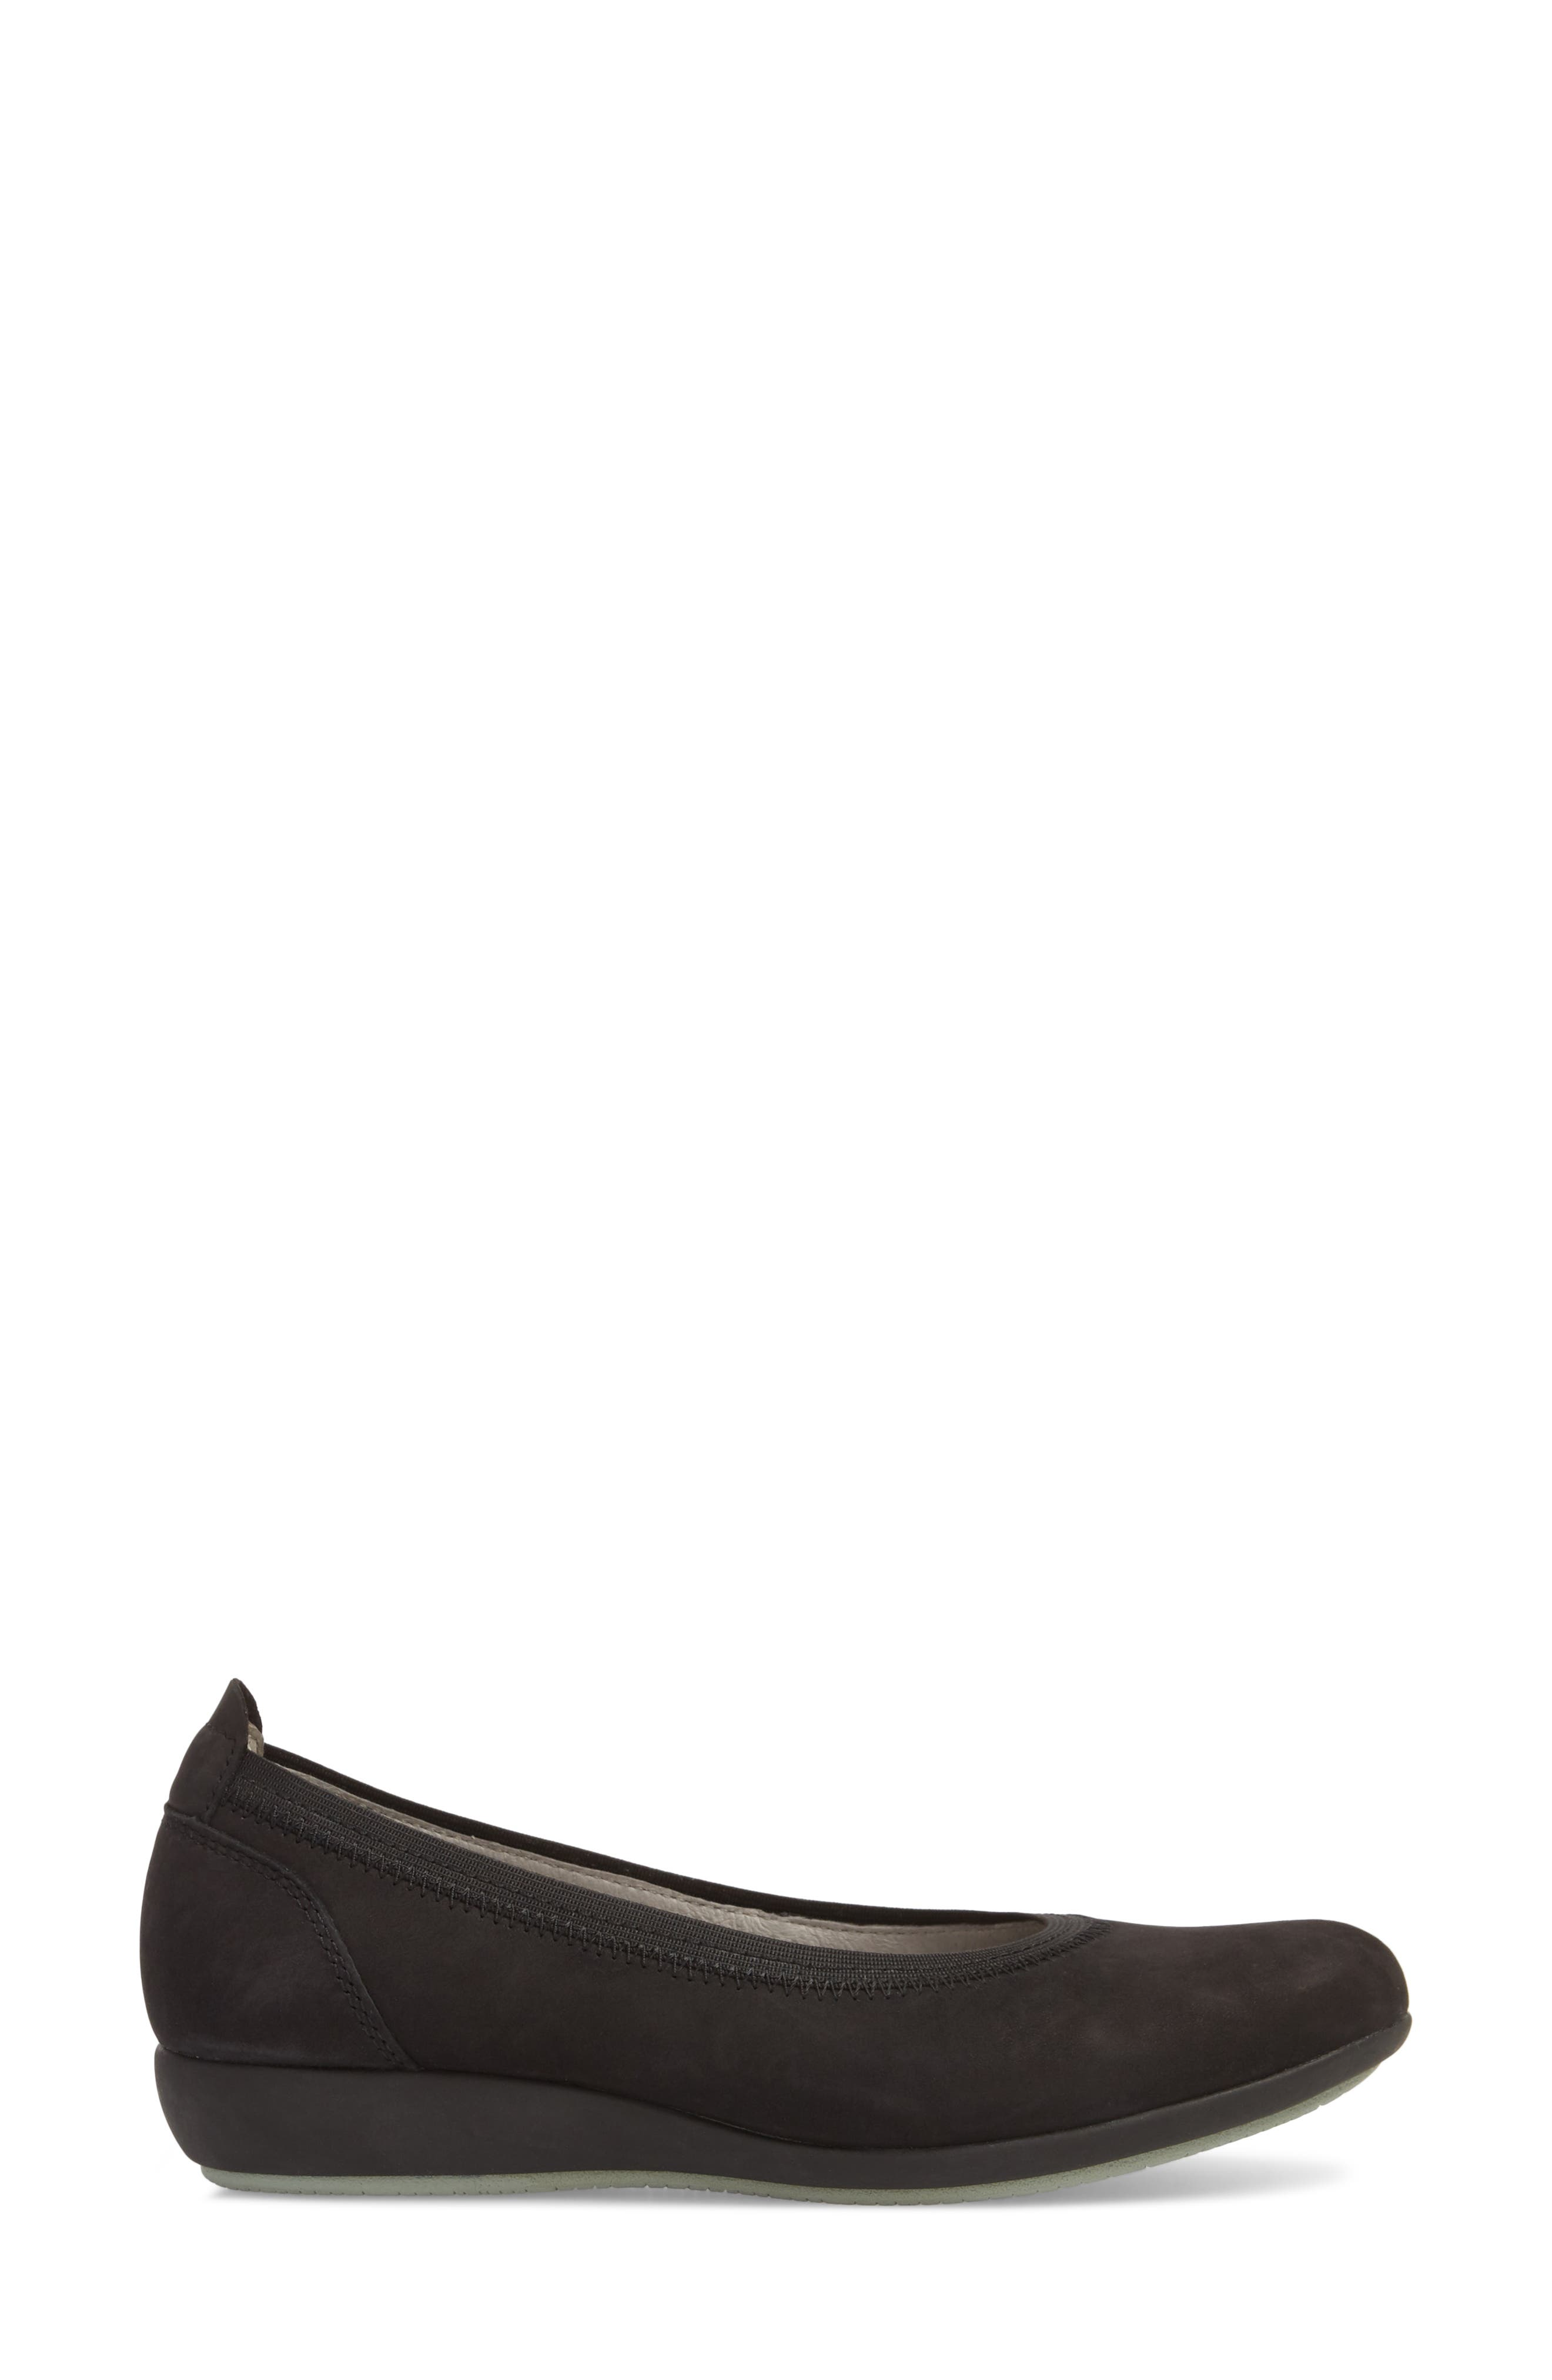 Kristen Ballet Flat,                             Alternate thumbnail 3, color,                             BLACK MILLED NUBUCK